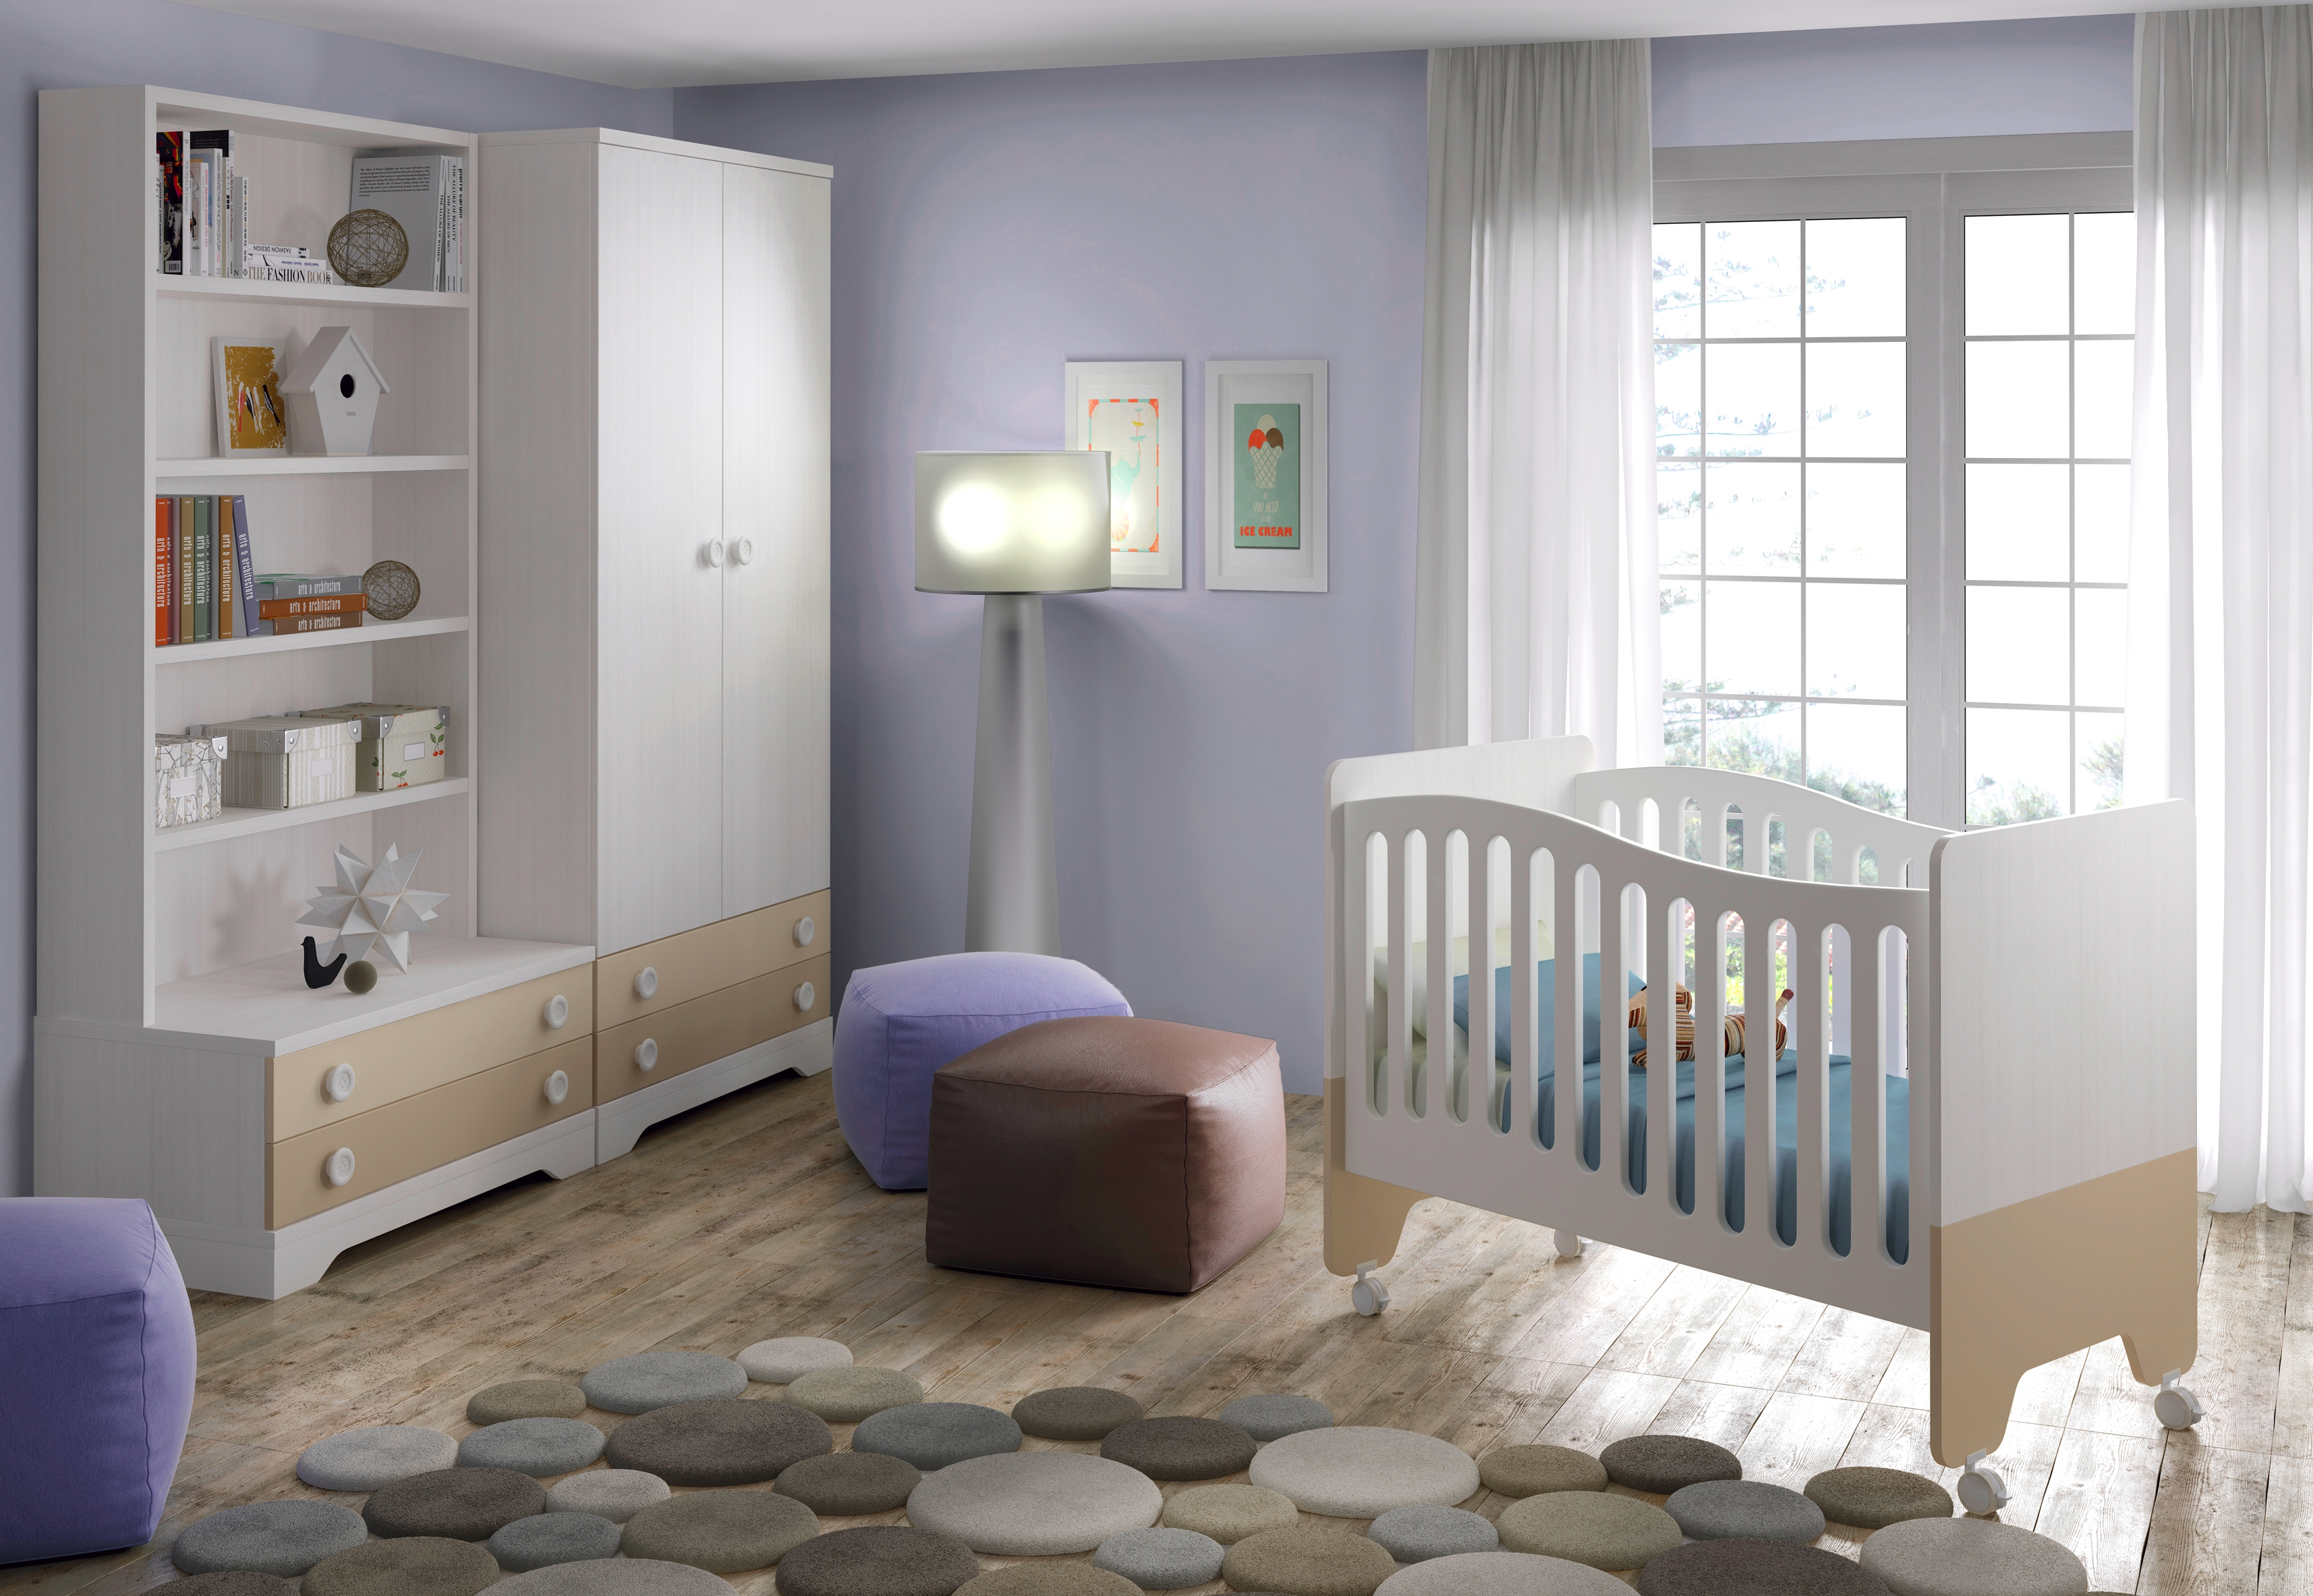 Chambre b b design bicouleur fun et color e glicerio for Photos chambre bebe